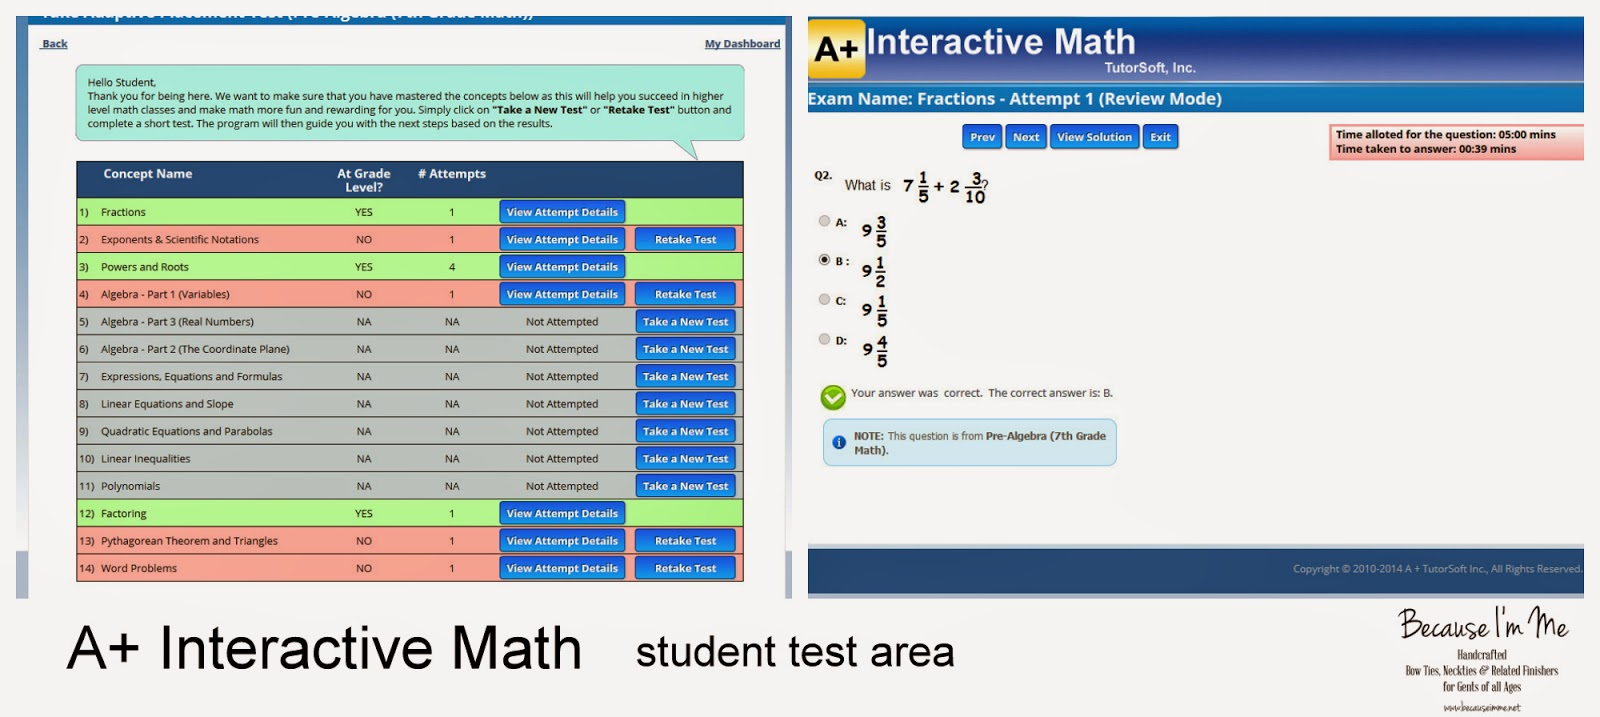 A+ Interactive Math student test area